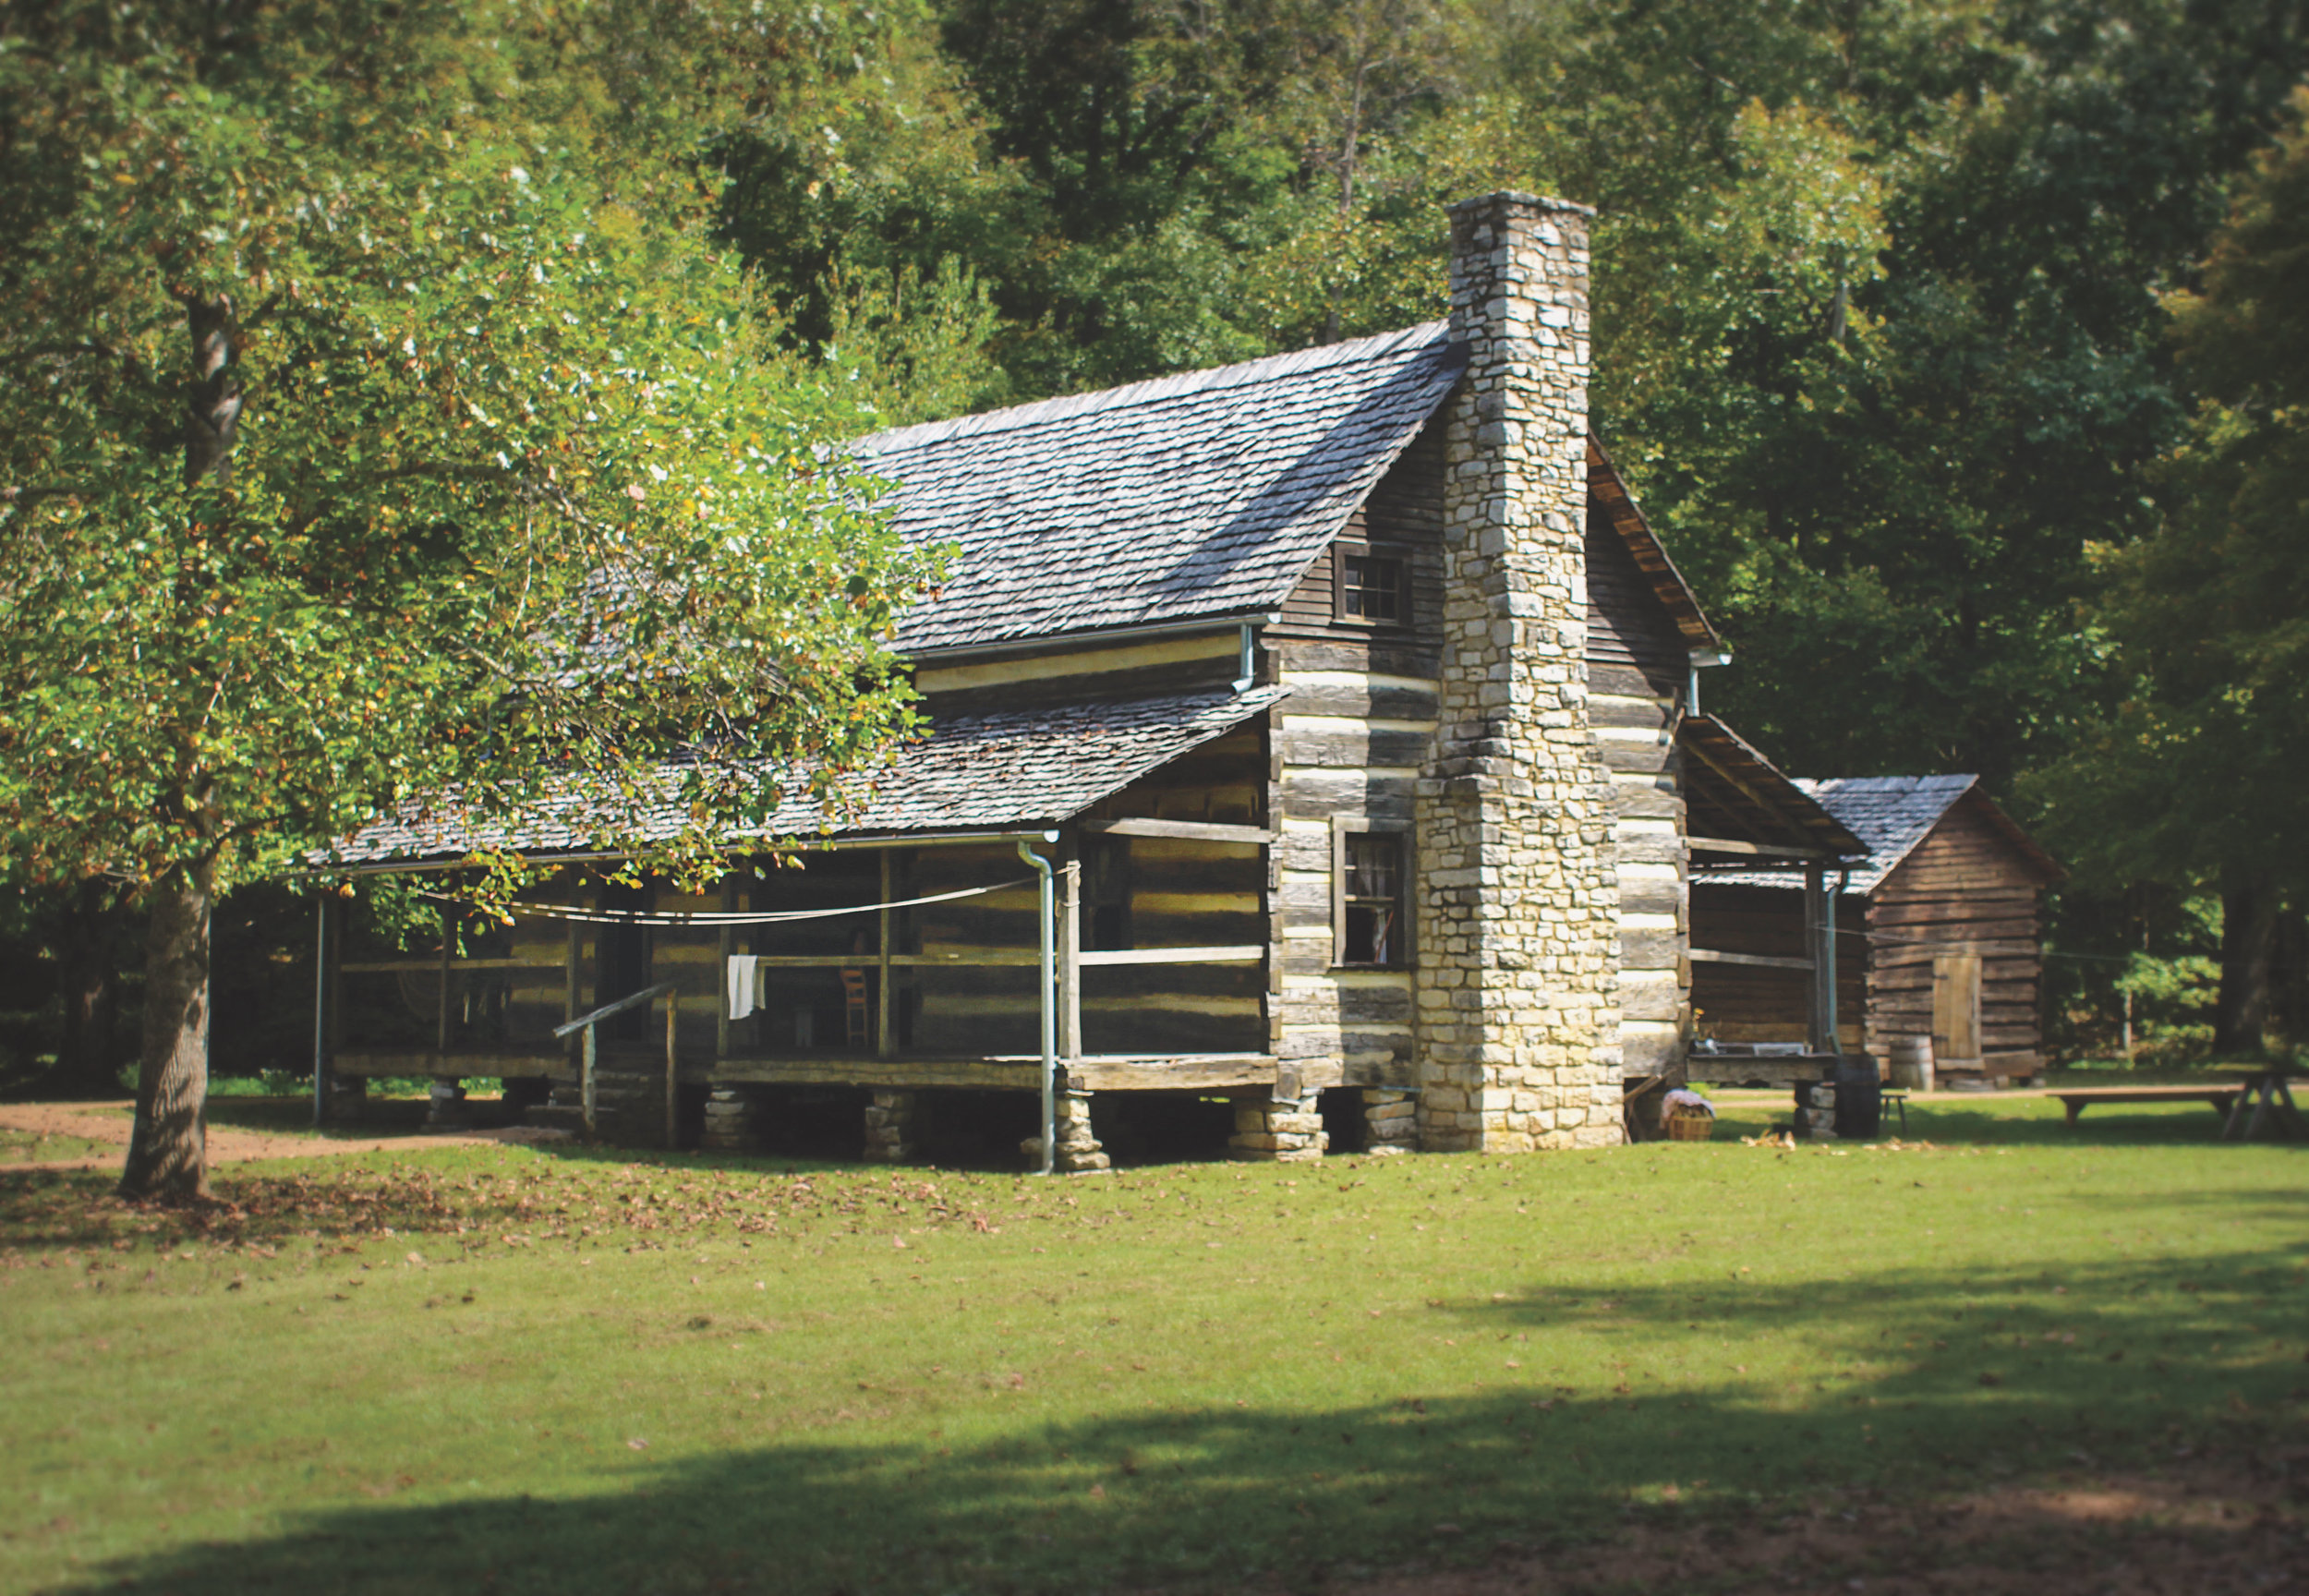 An original 1850's log cabin, now a living history museum and known as The Homeplace.